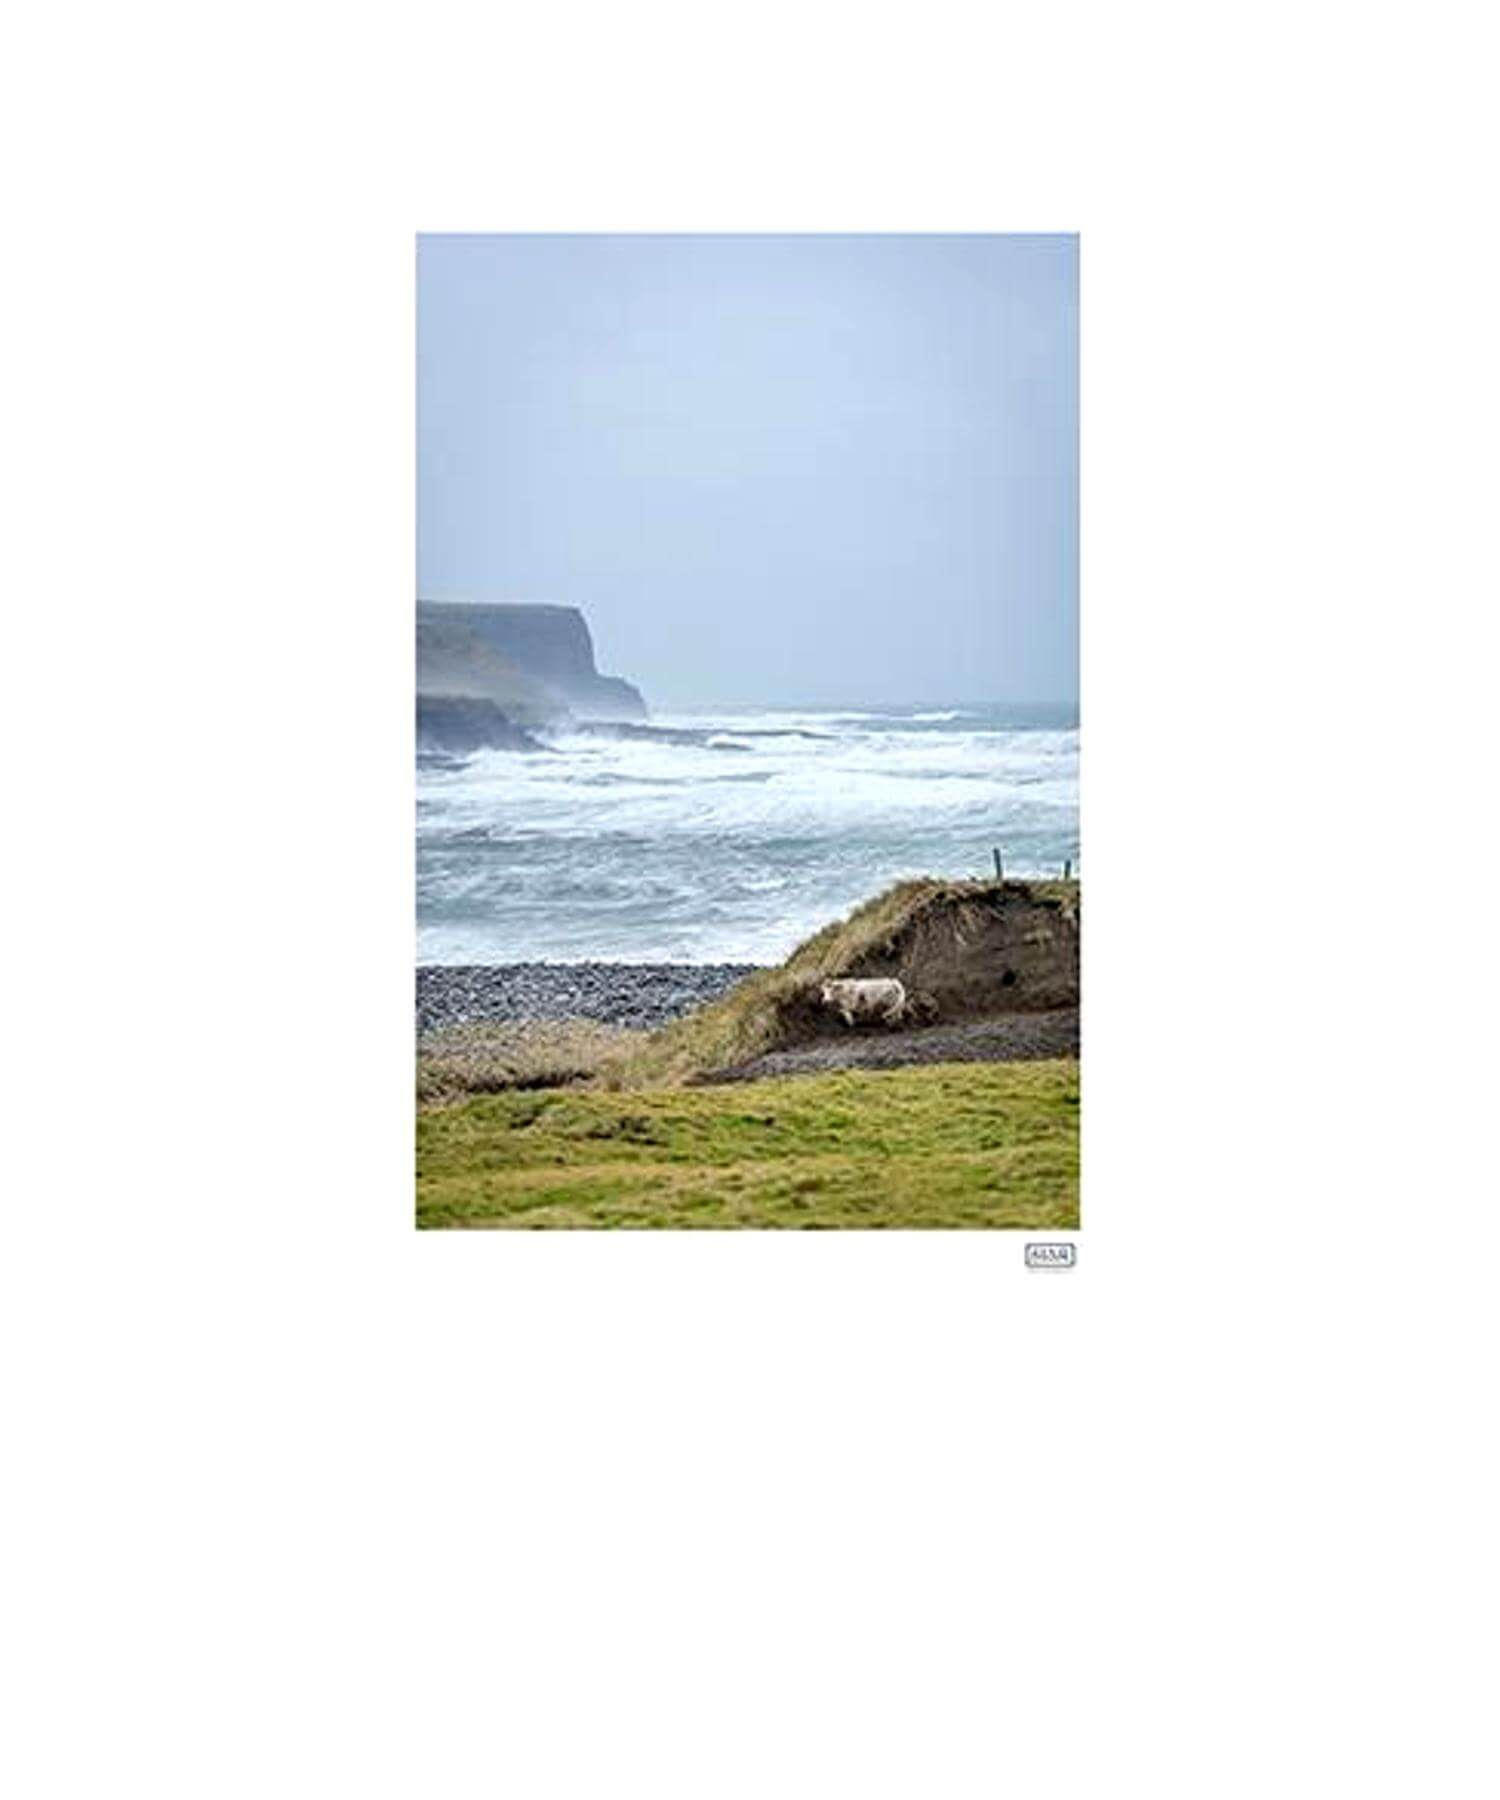 Finding Shelter, Doolin - [Siar Photography] - Wall Art & Photography - Irish Gifts